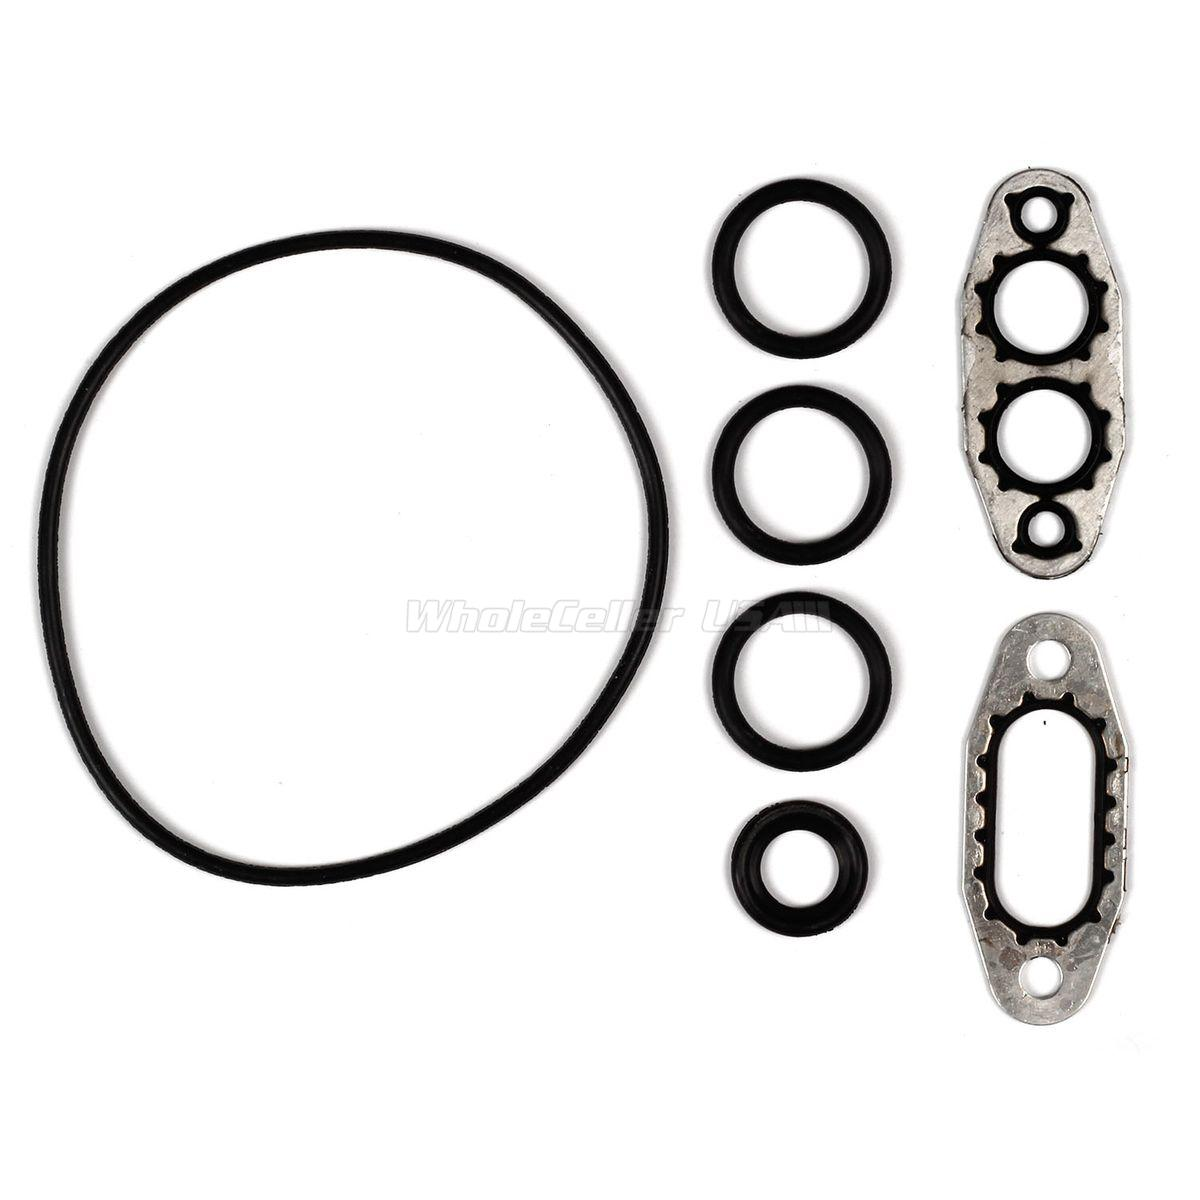 For GMC For Ford For Isuzu For Saab 97-11 Lower Gasket Set